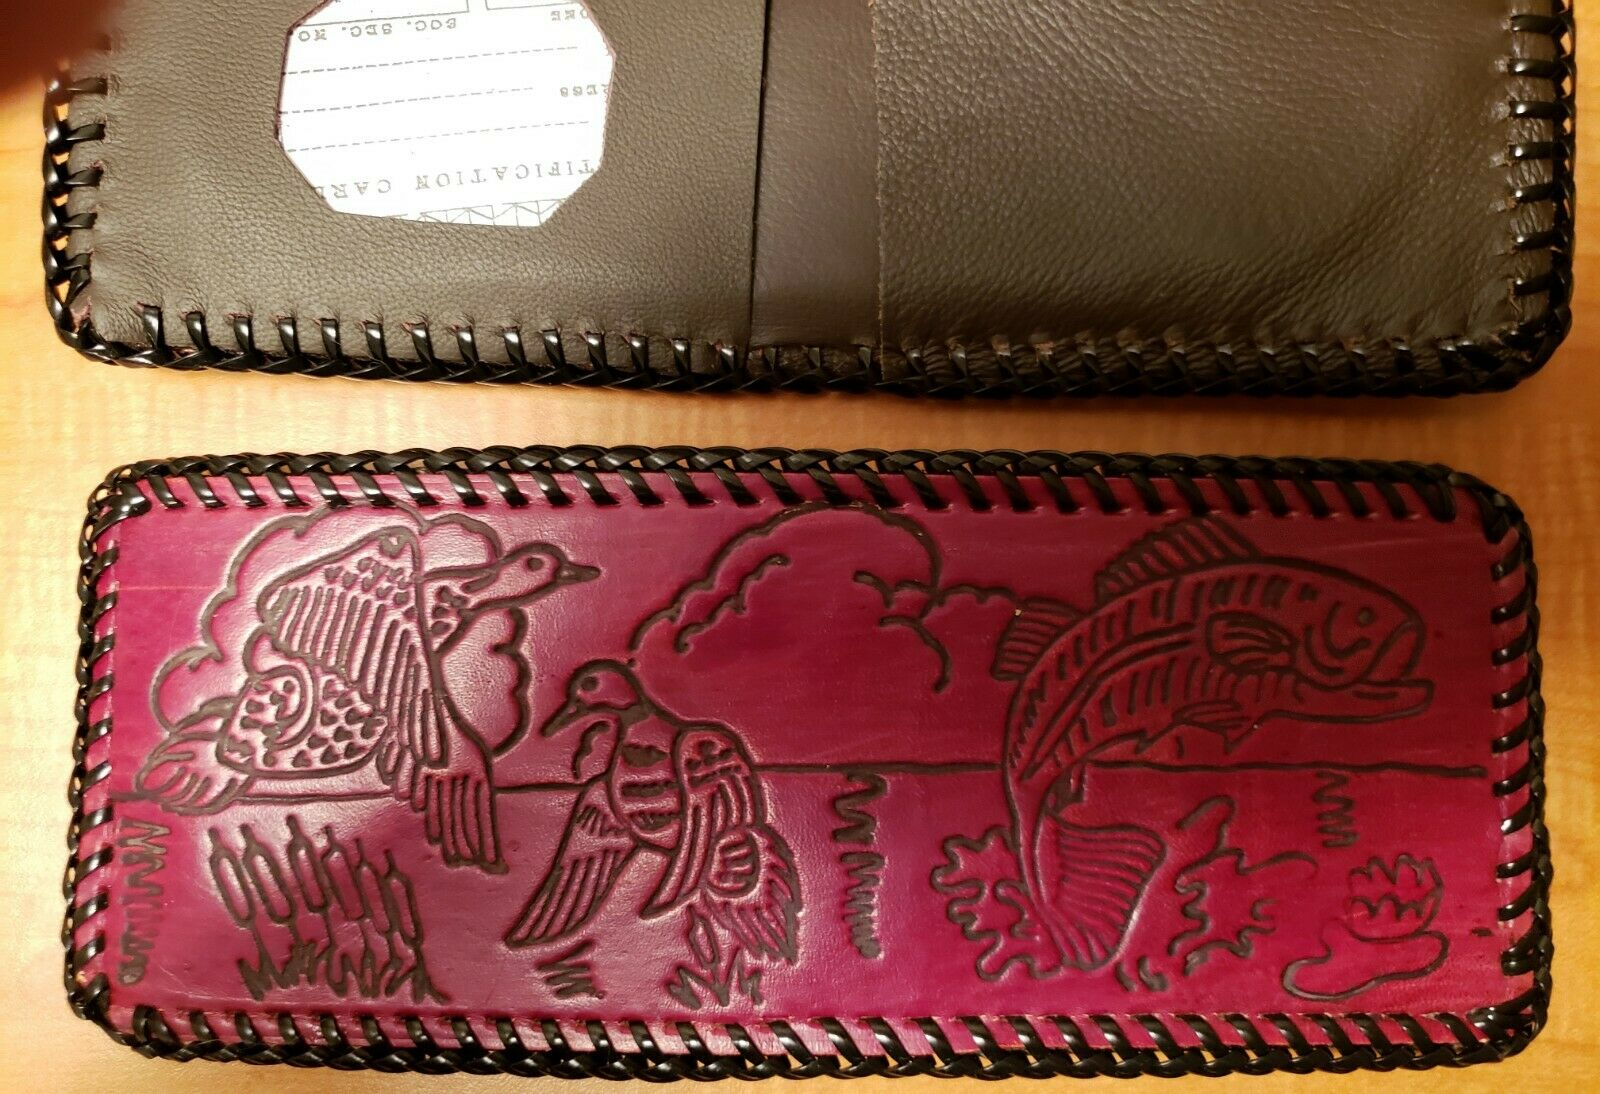 Bass and Ducks - Prison made Bi-fold USA Made Beautiful Leather Laced Wallet